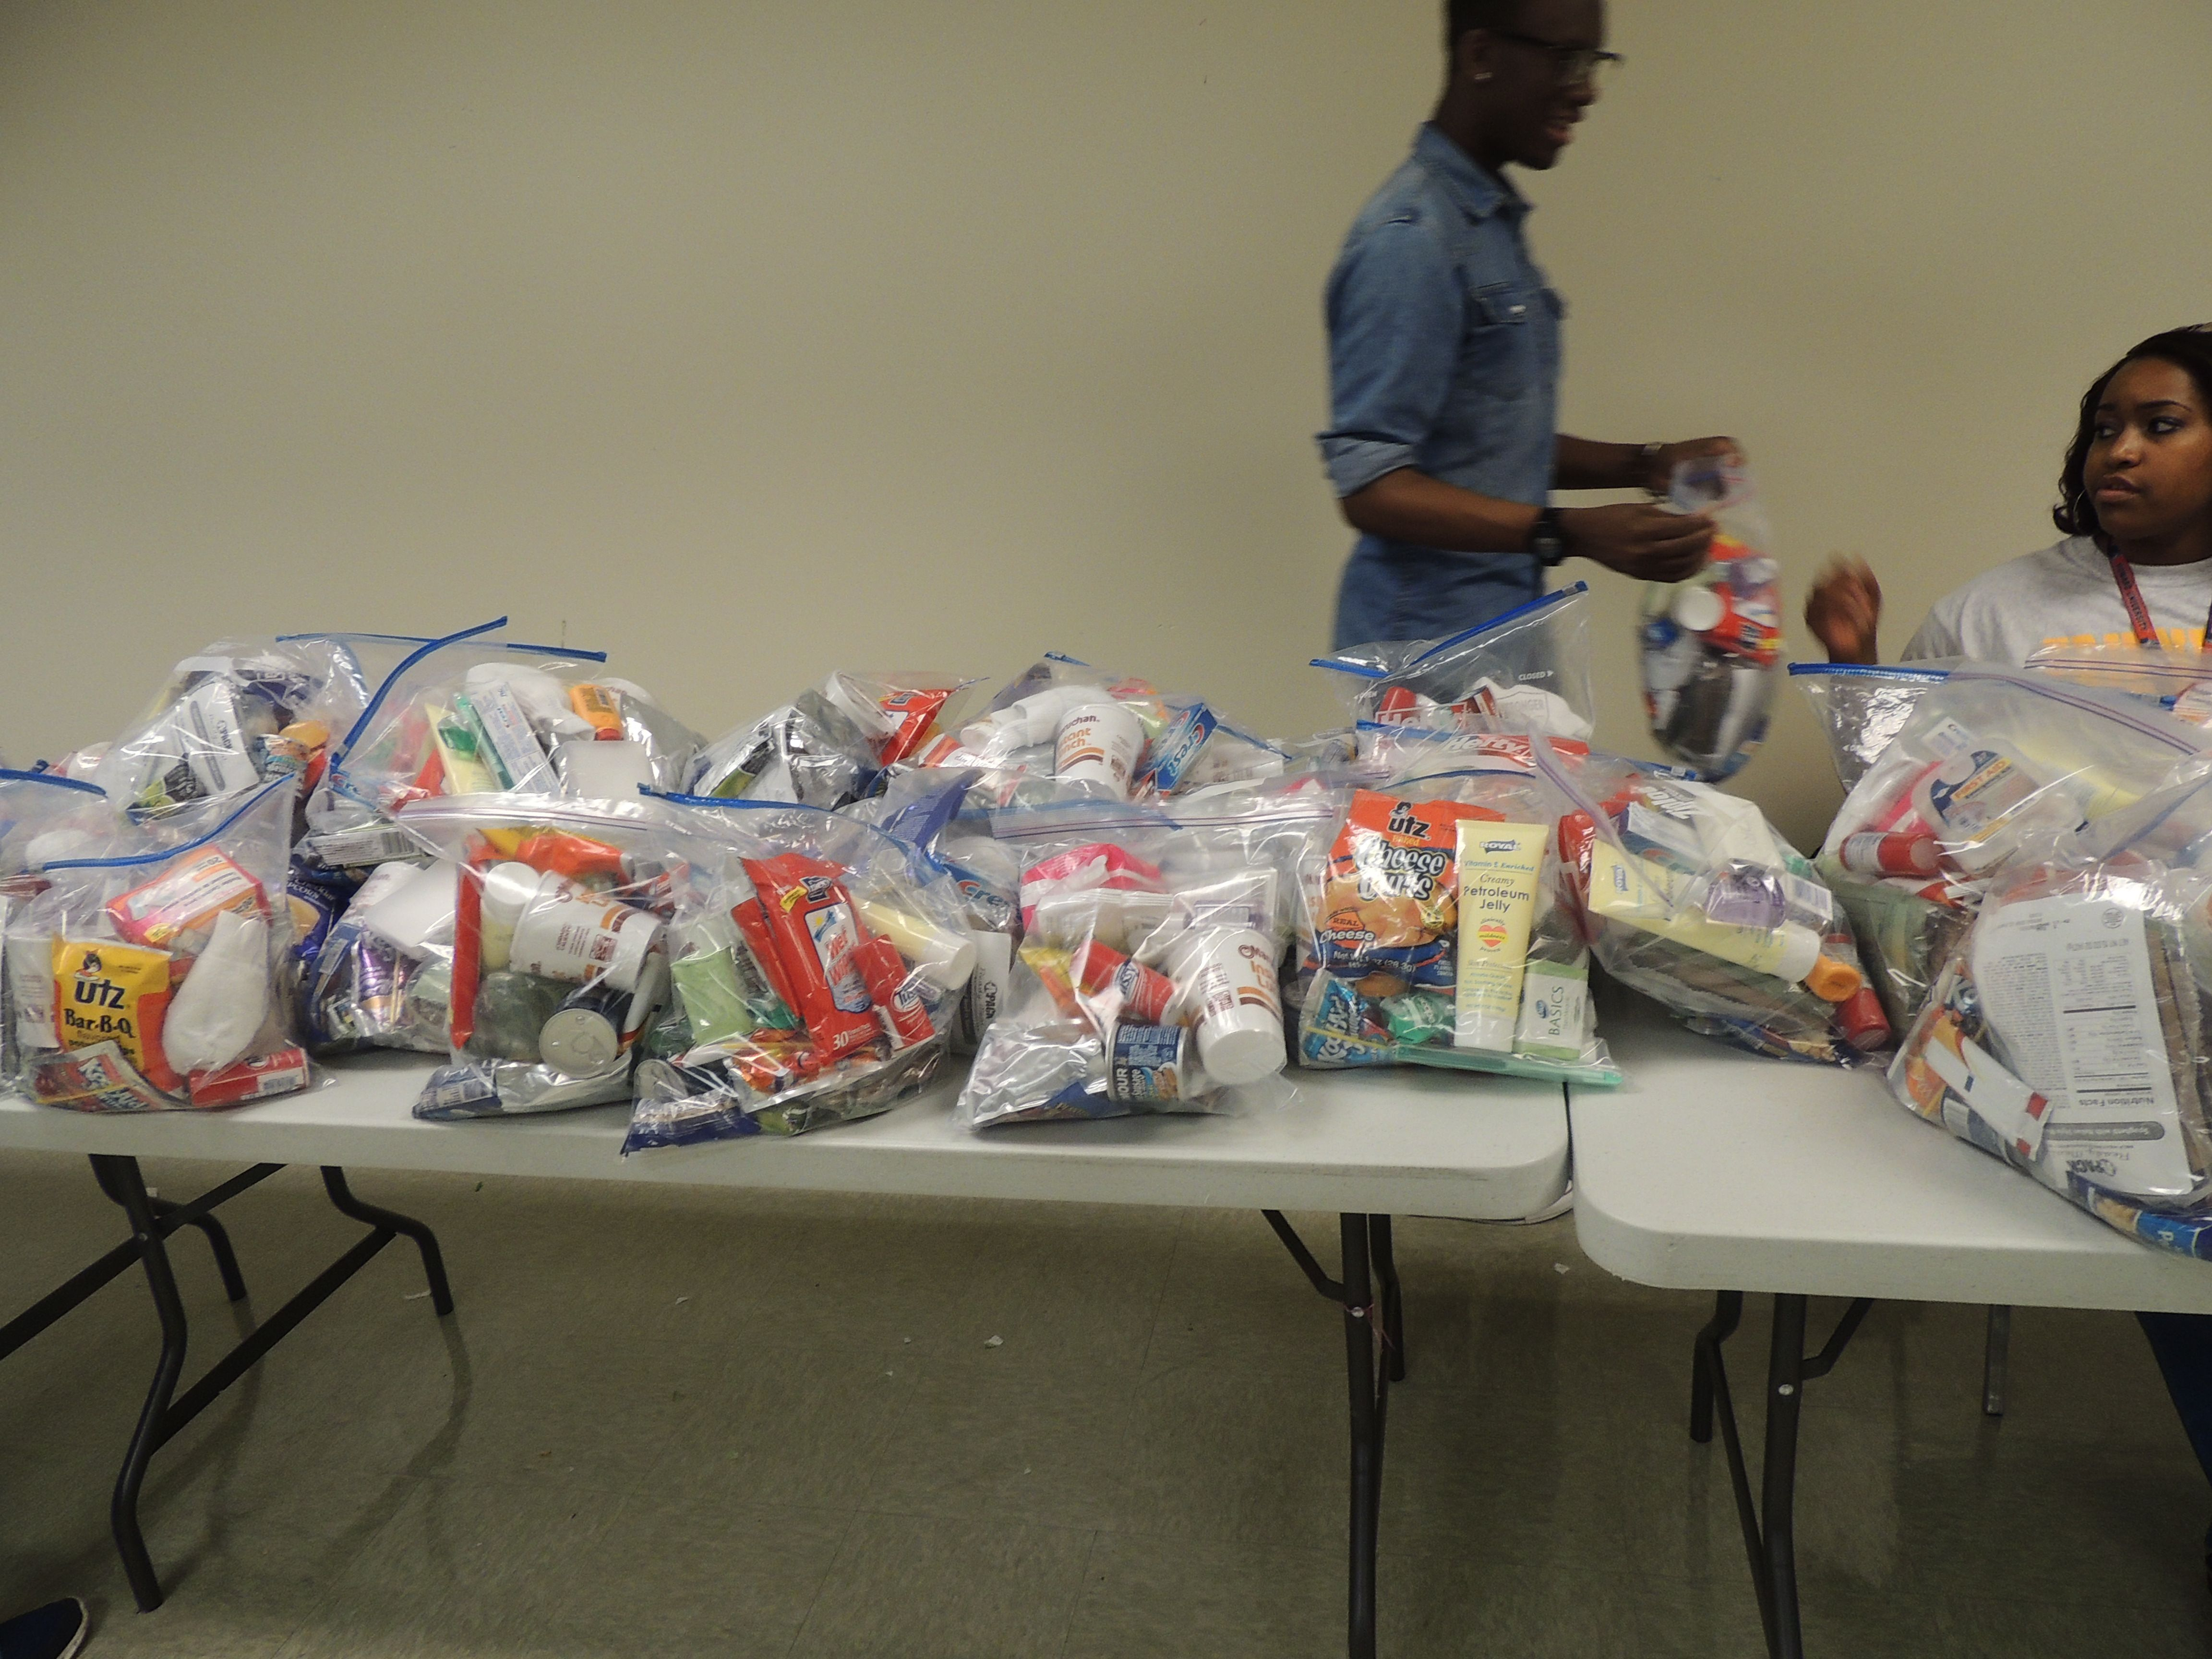 Our volunteers packaged food and hygienic essentials to give out to those in need.